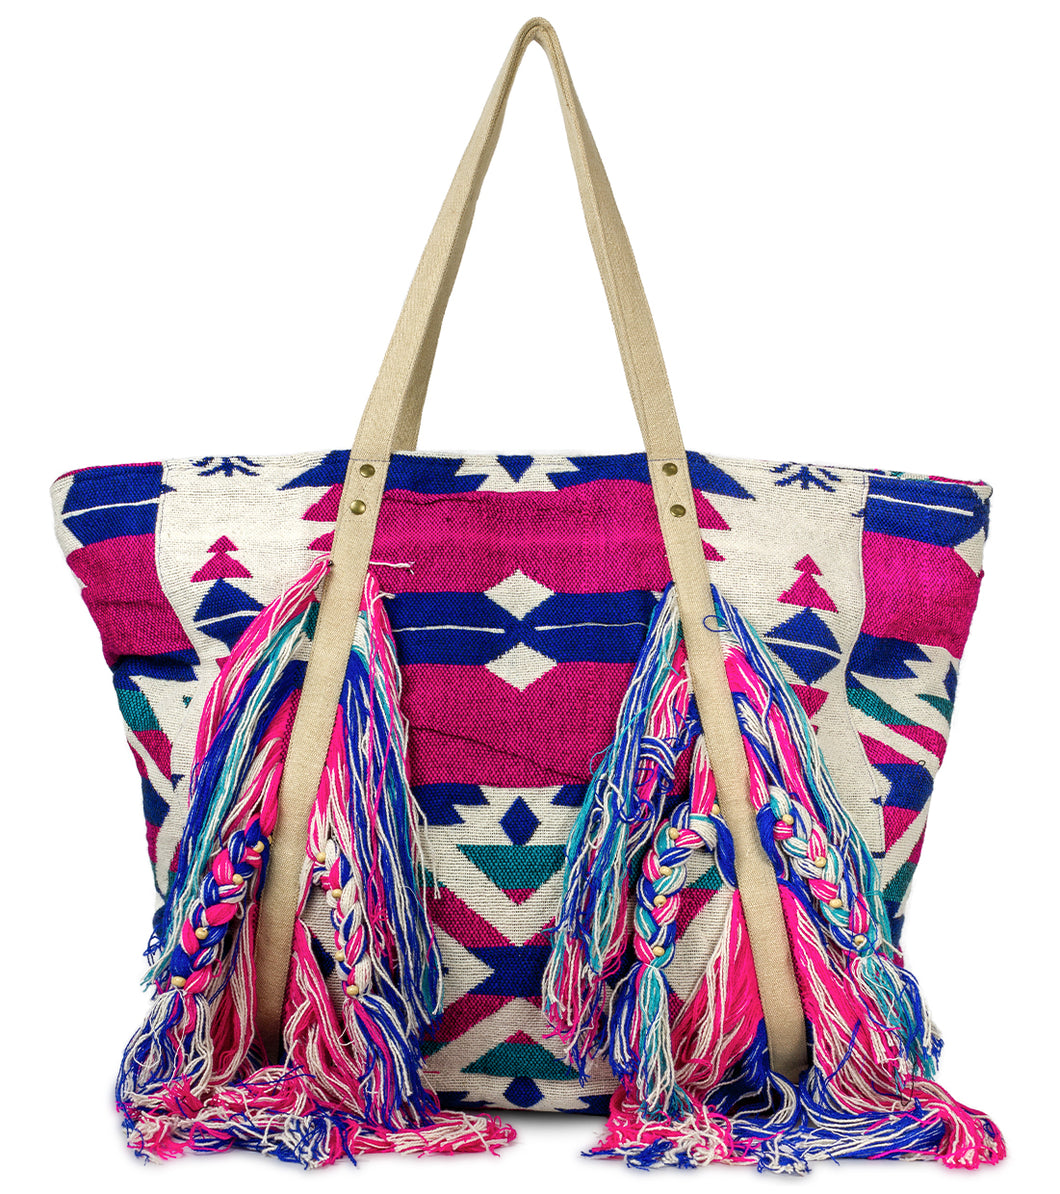 Aztec Tote with Large Frayed Tassels - Just Jamie